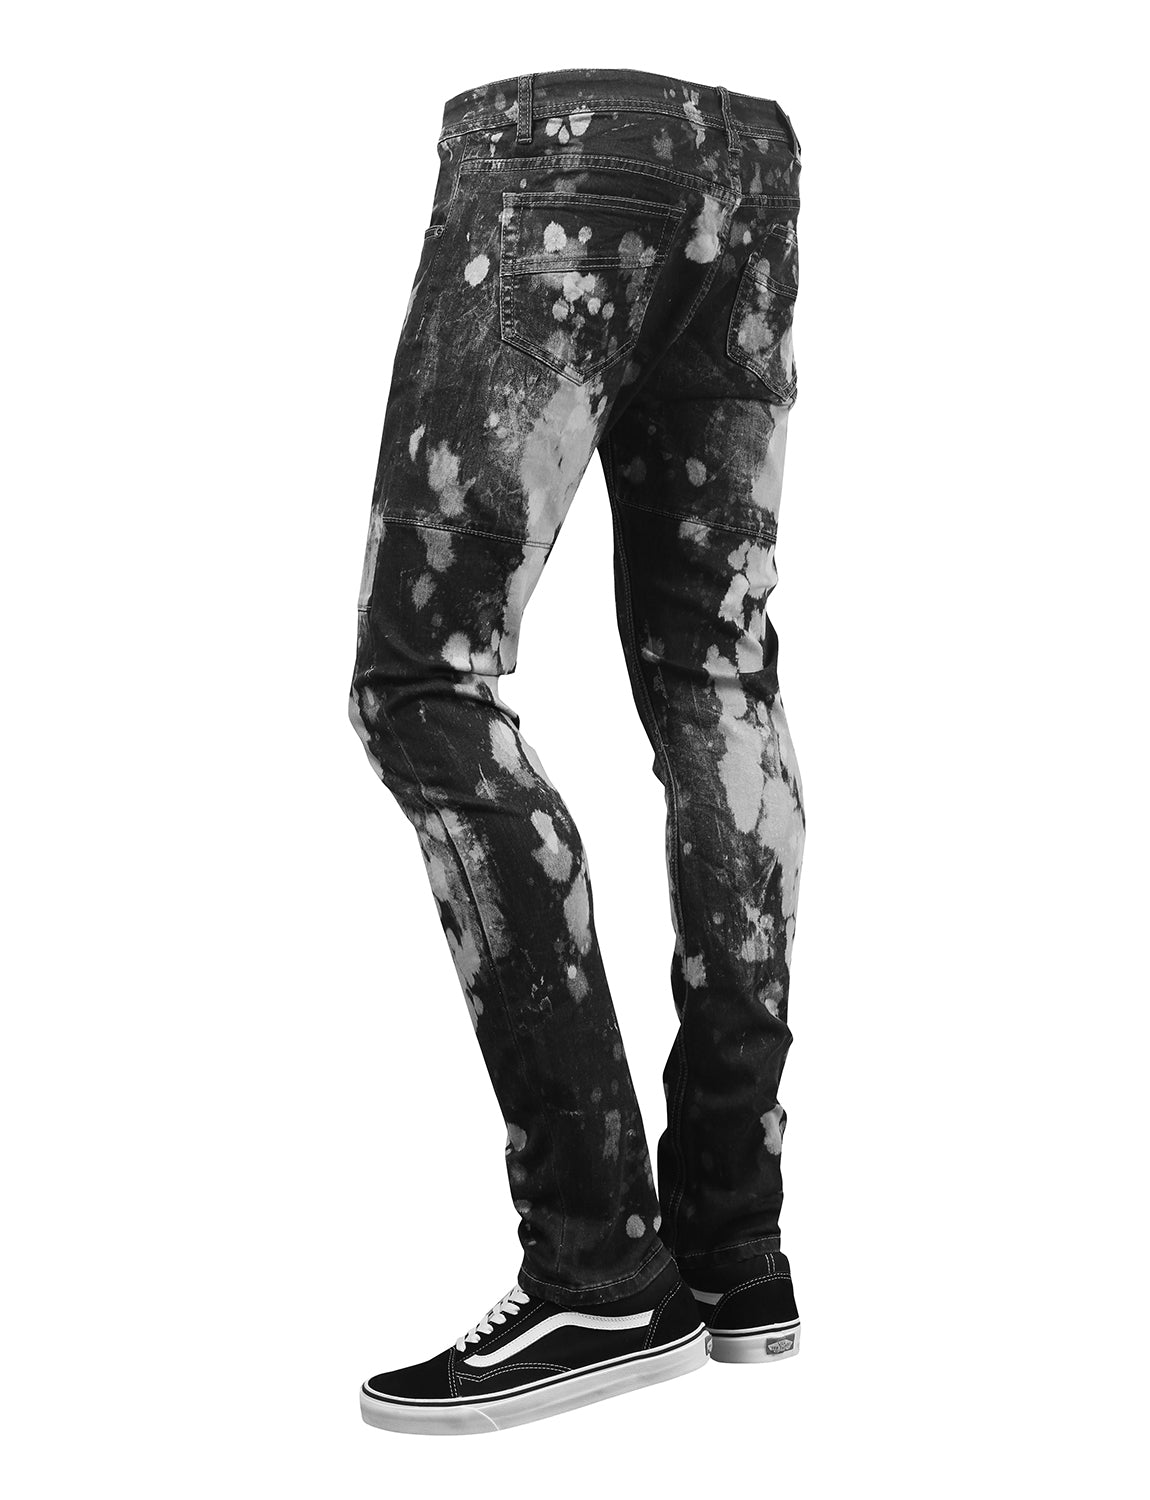 BLACK Spot Faded Denim Jeans - URBANCREWS